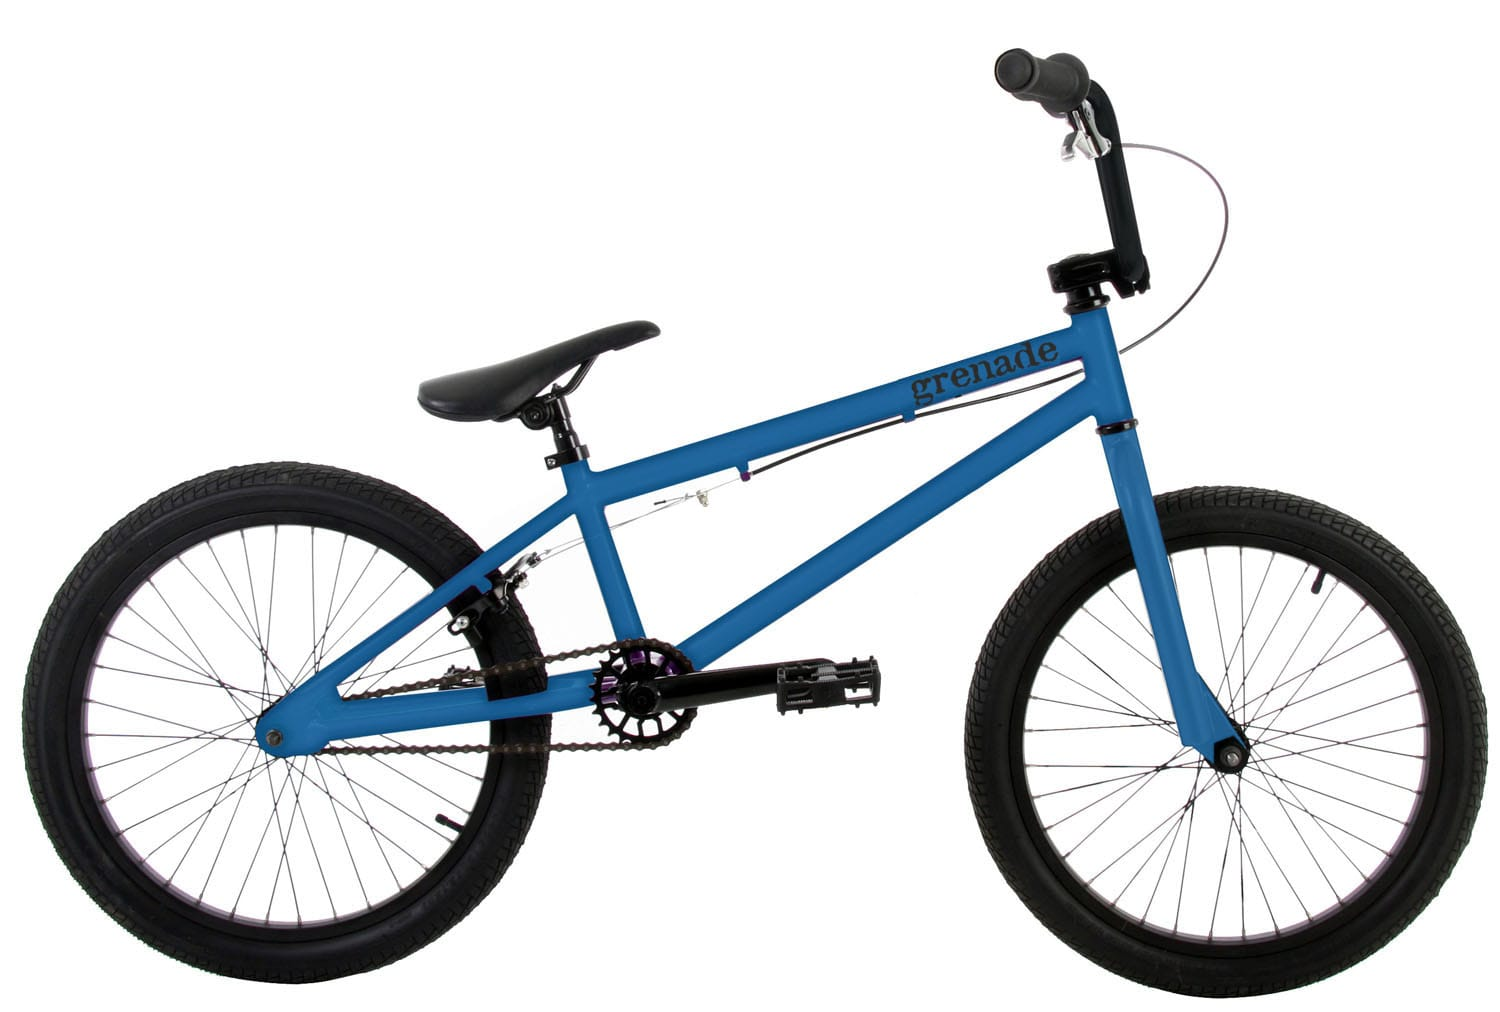 Cheap Bikes At Kmart Grenade Stealth BMX Bike in